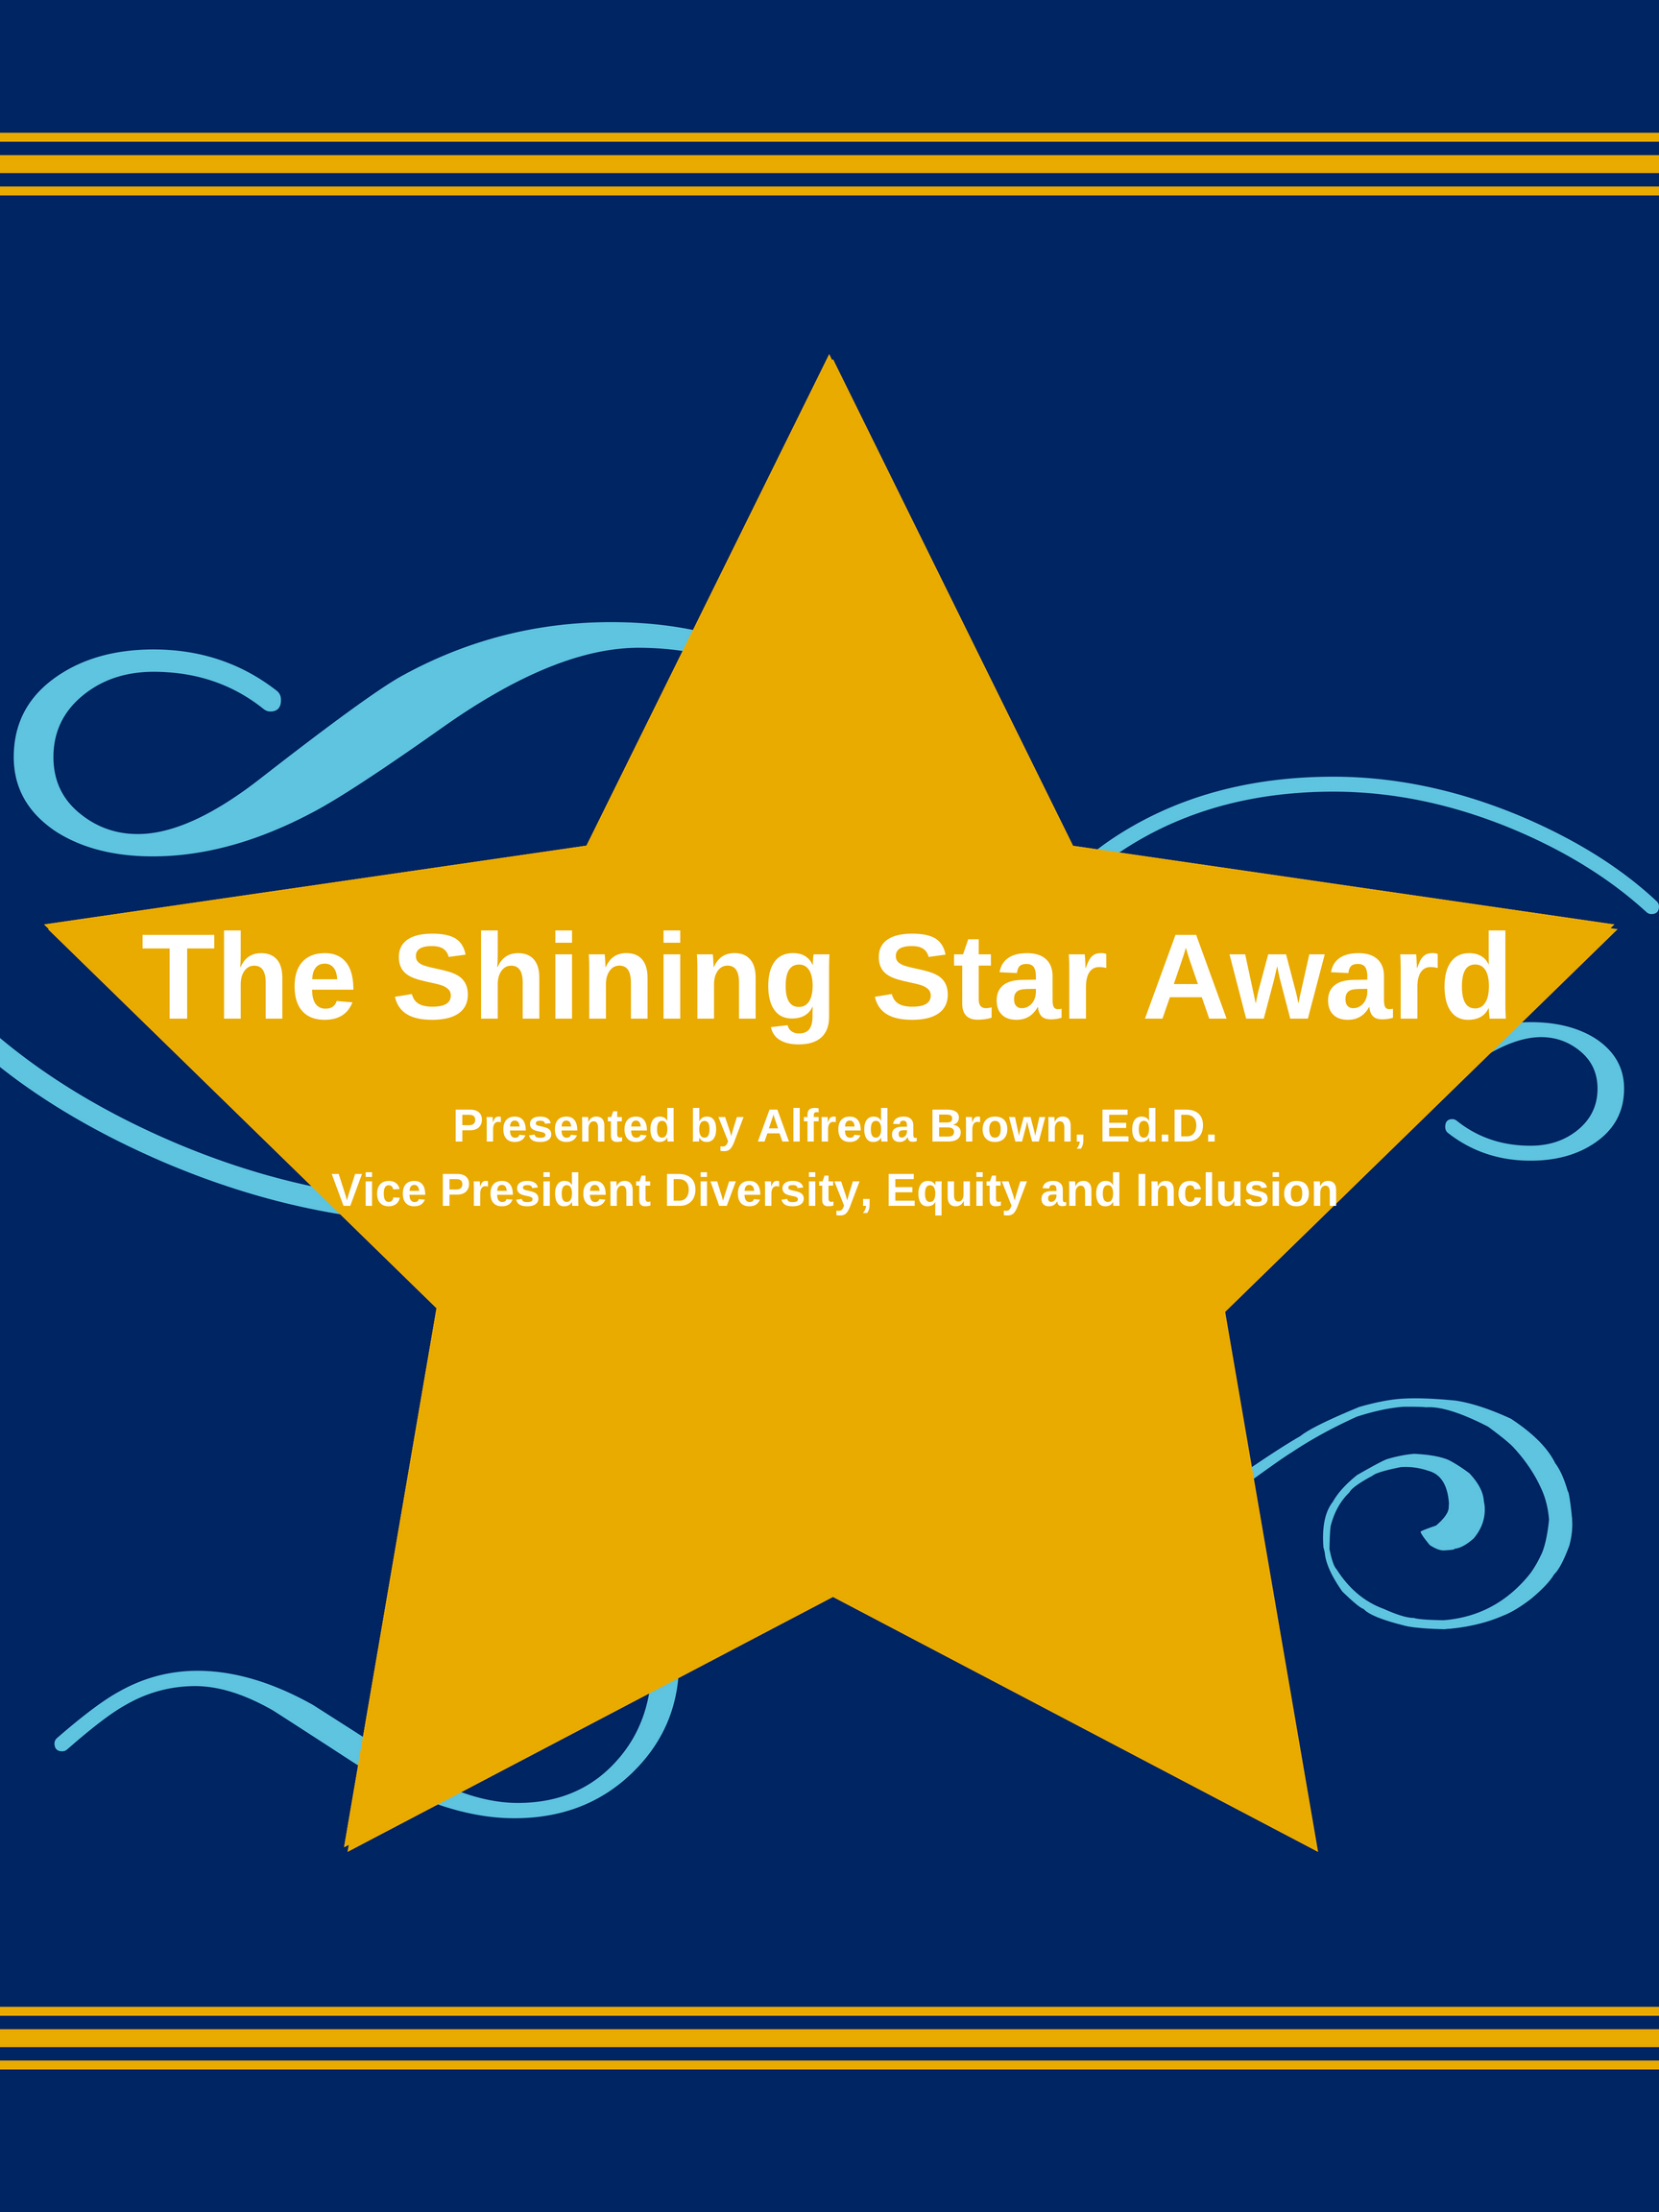 The Shining Stark Award presented by Alfreda Brown, Ed.D. Vice President for Diversity, Equity and Inclusion.